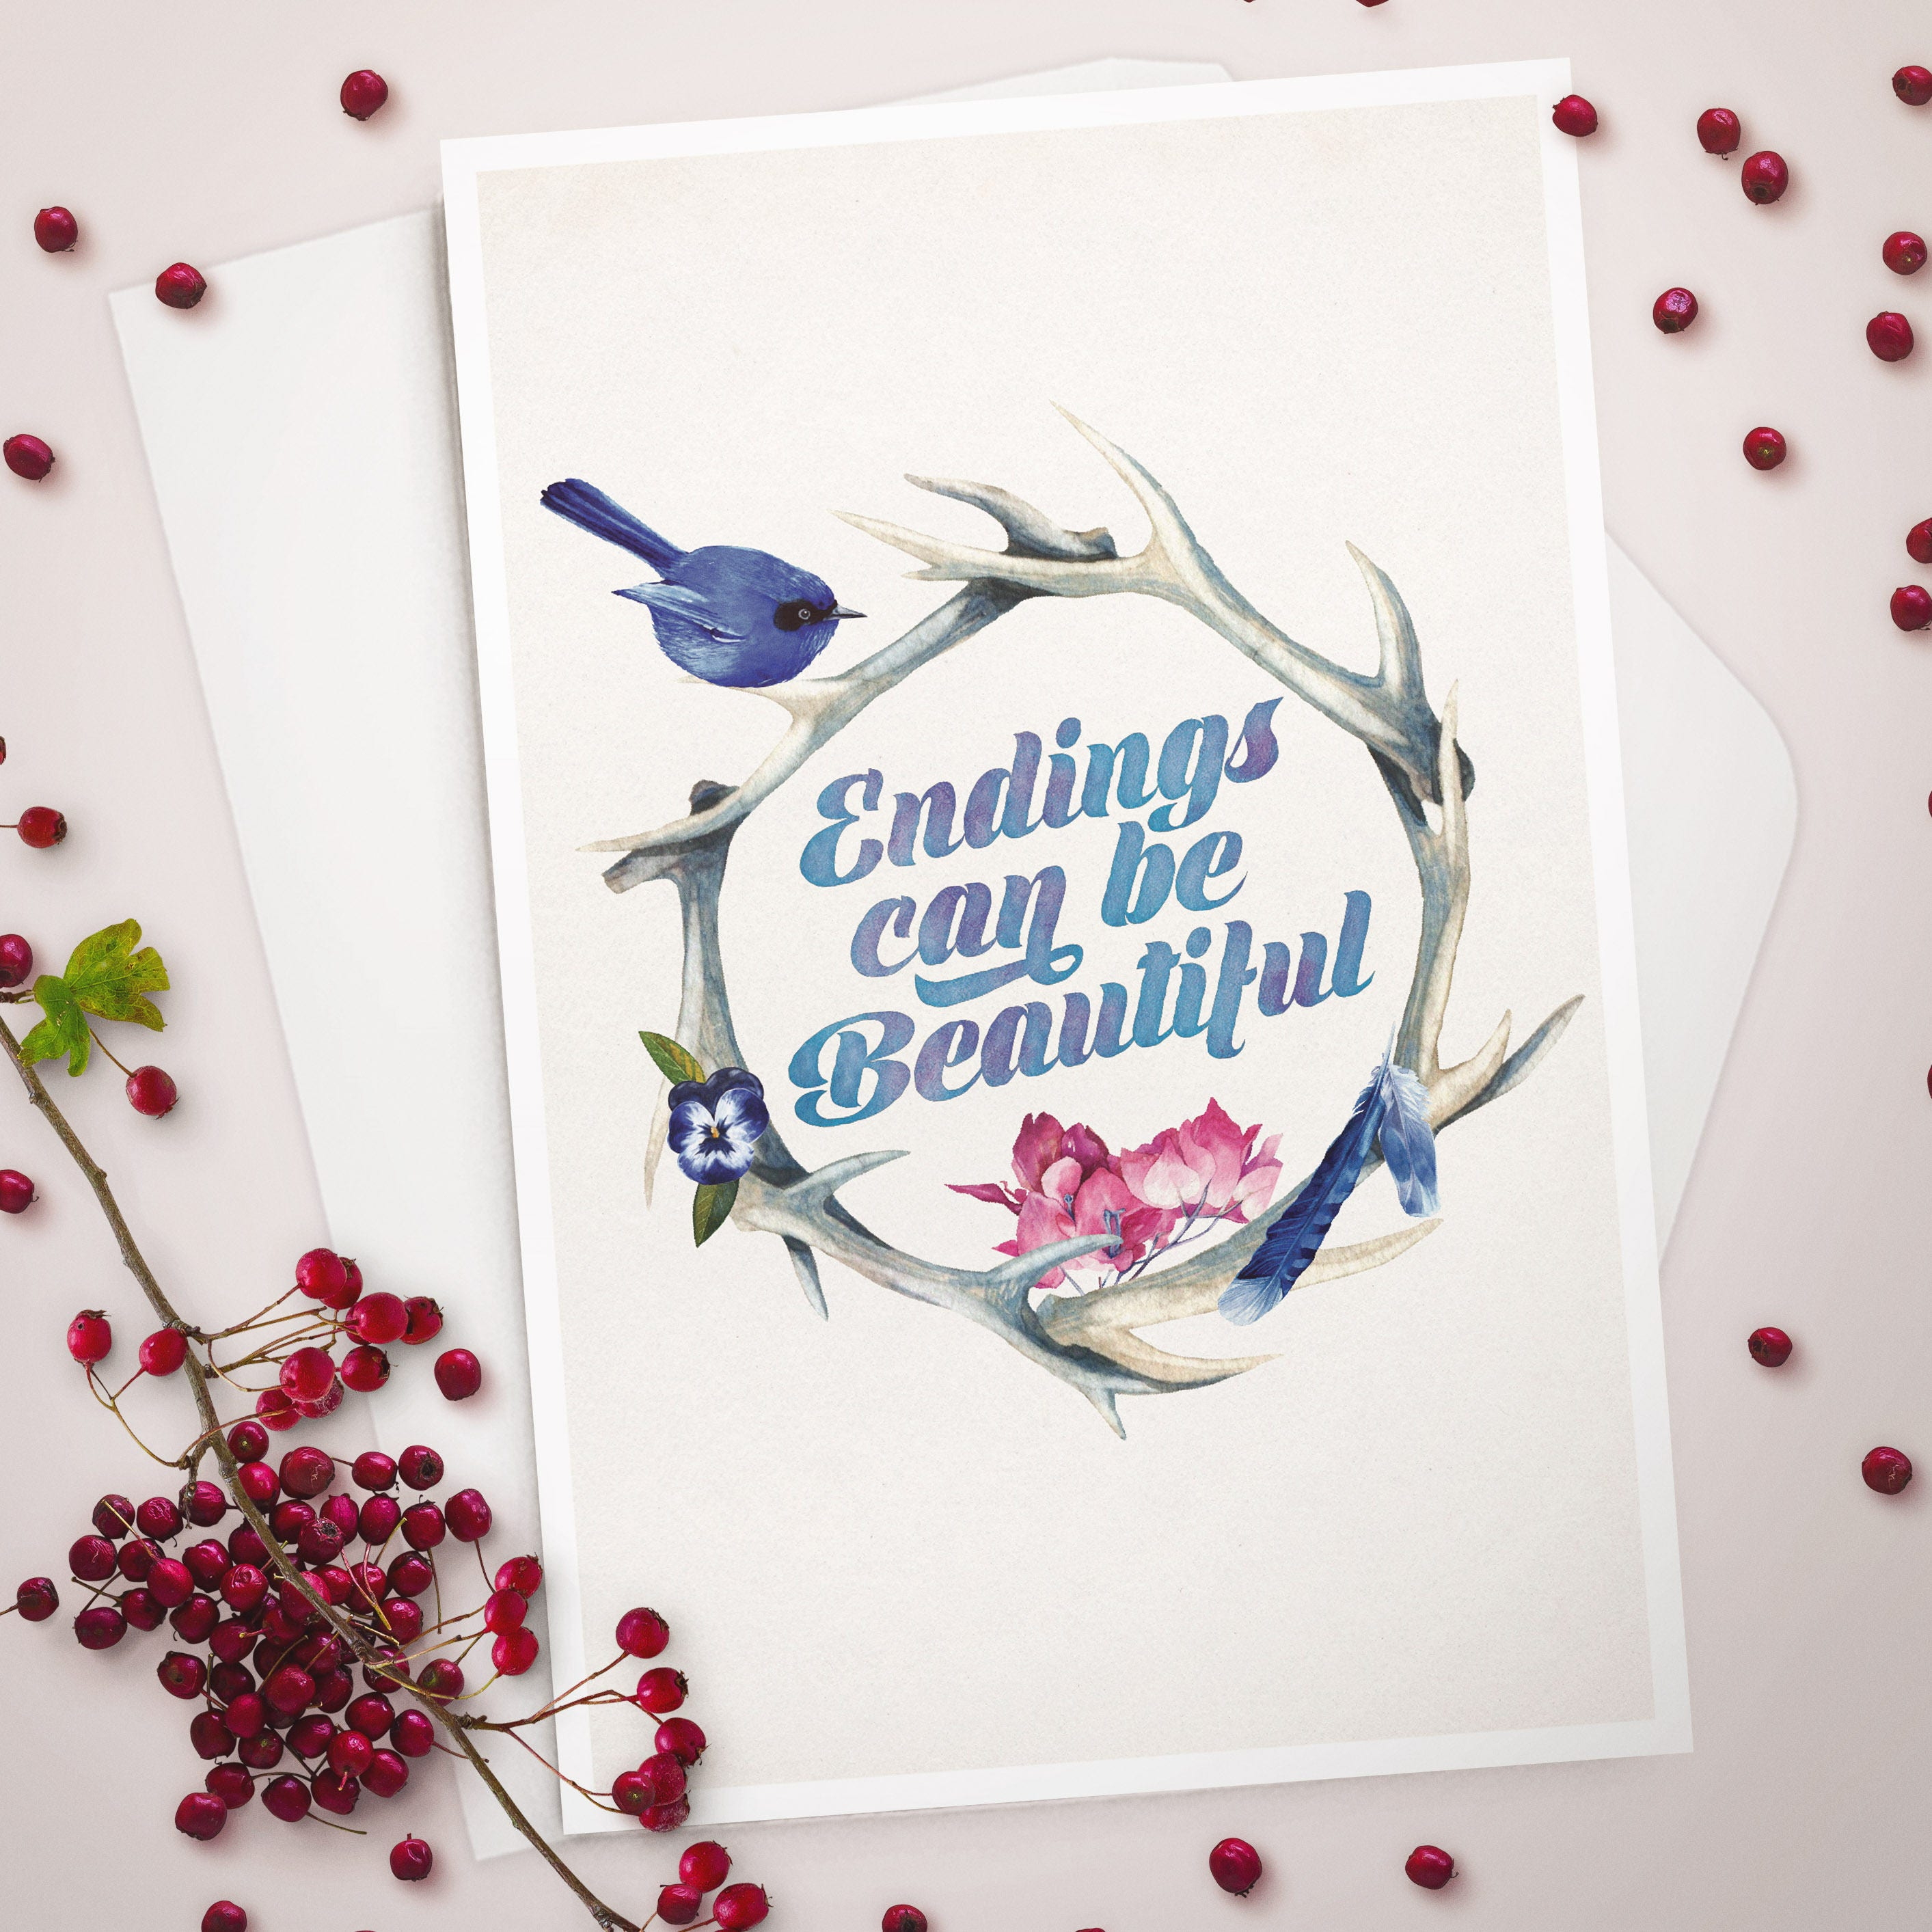 Sympathy greeting card endings can be beautiful sympathy card for sympathy greeting card endings can be beautiful sympathy card for friend grief kristyandbryce Images